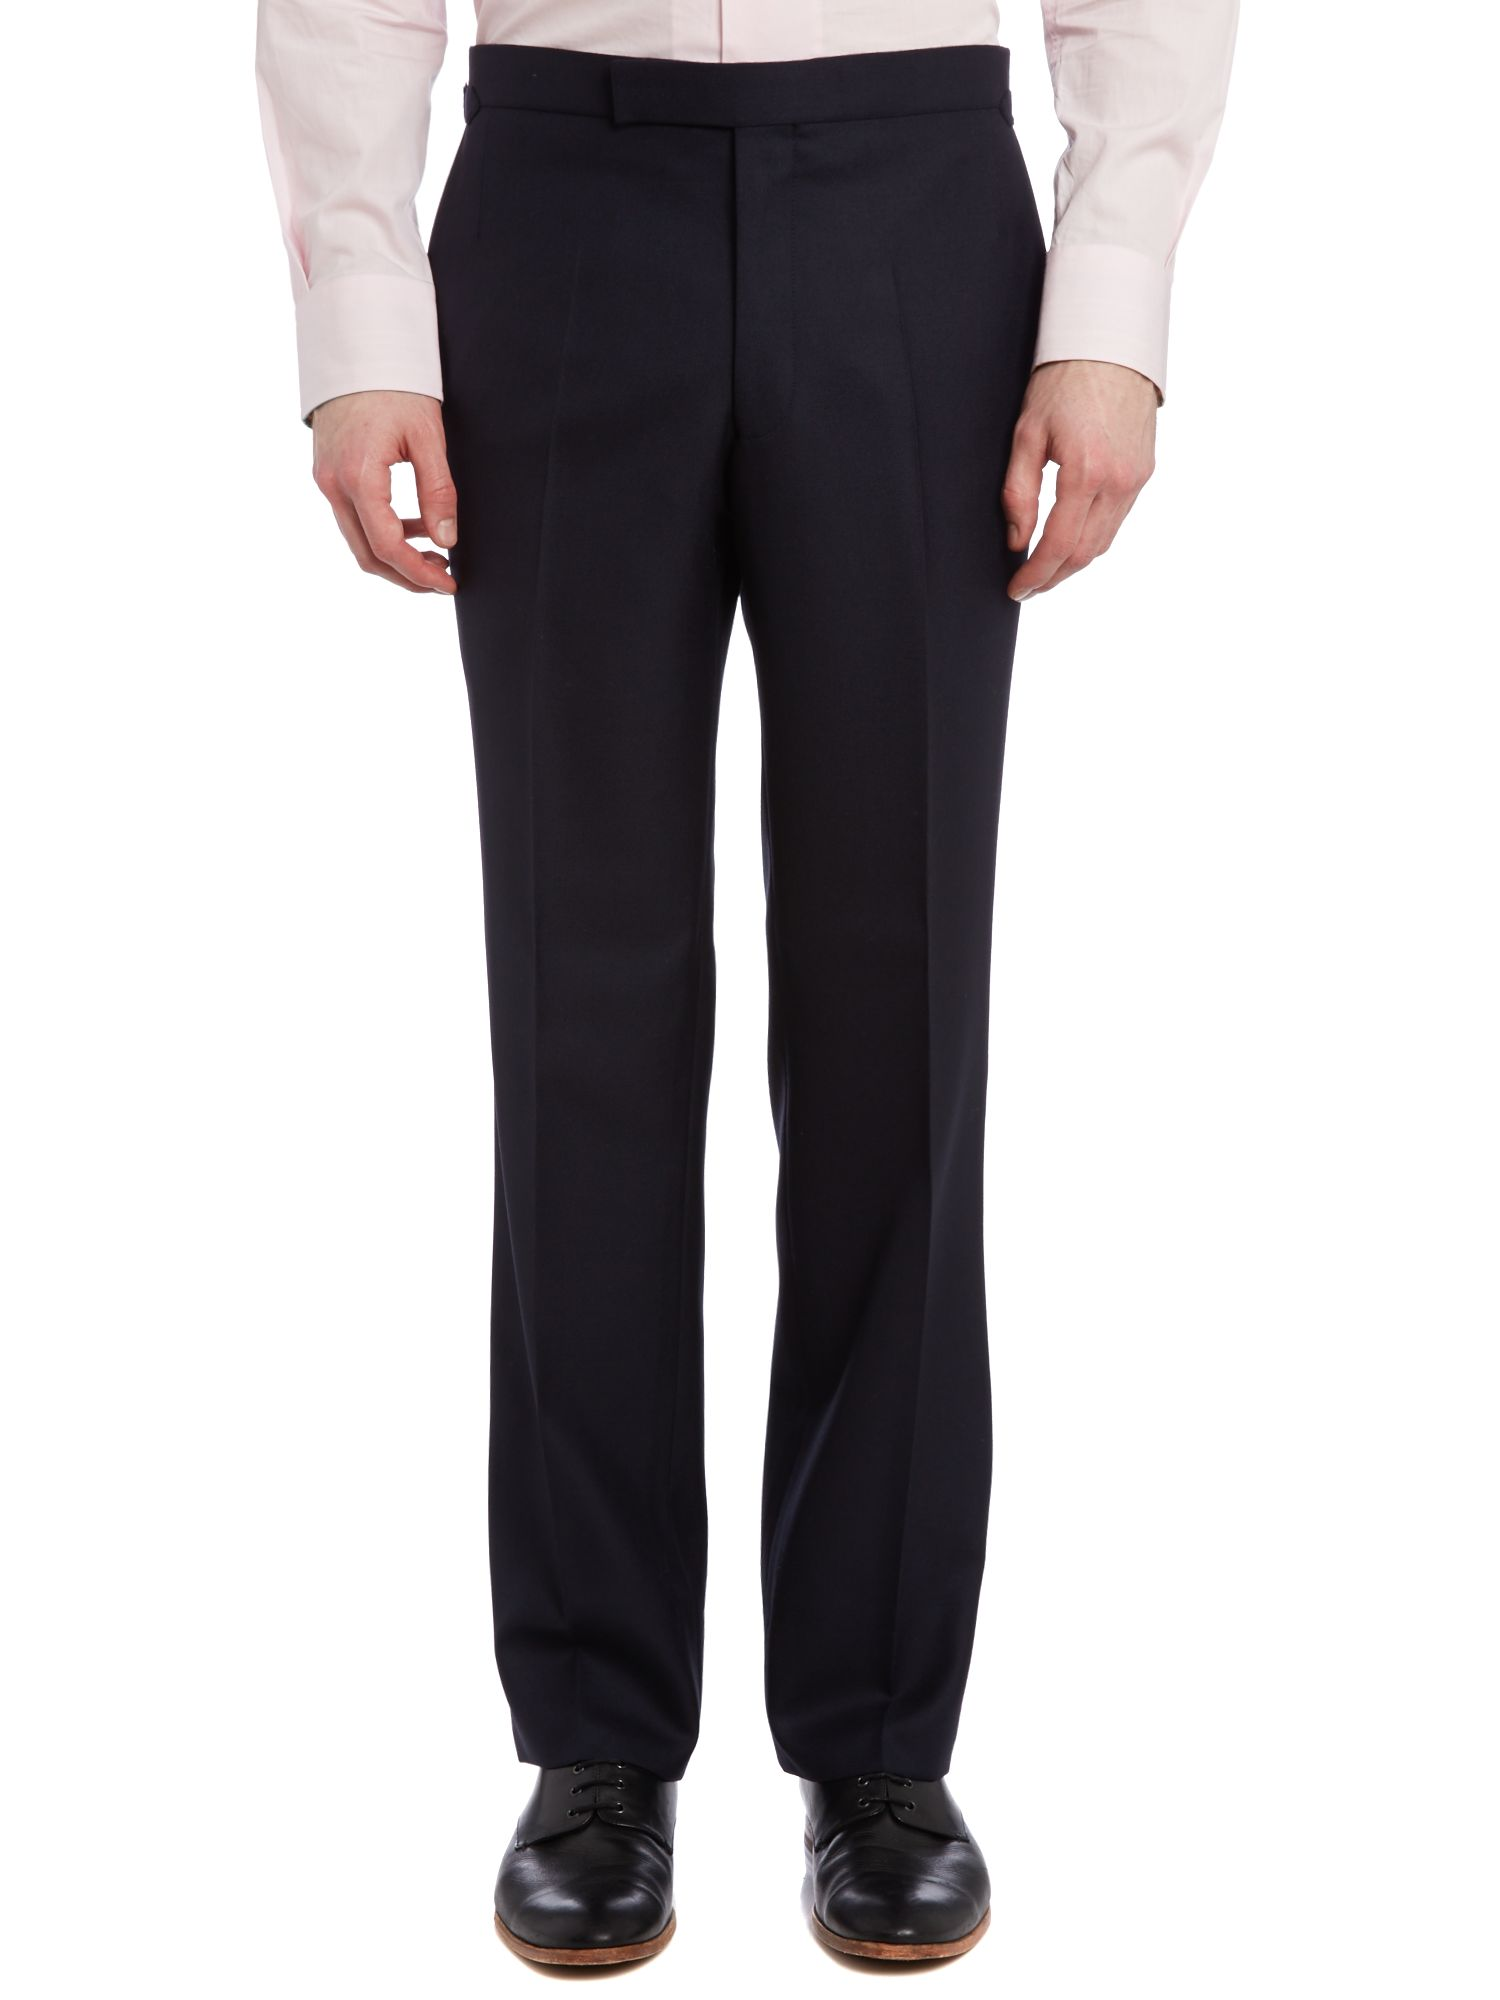 Burlington trouser